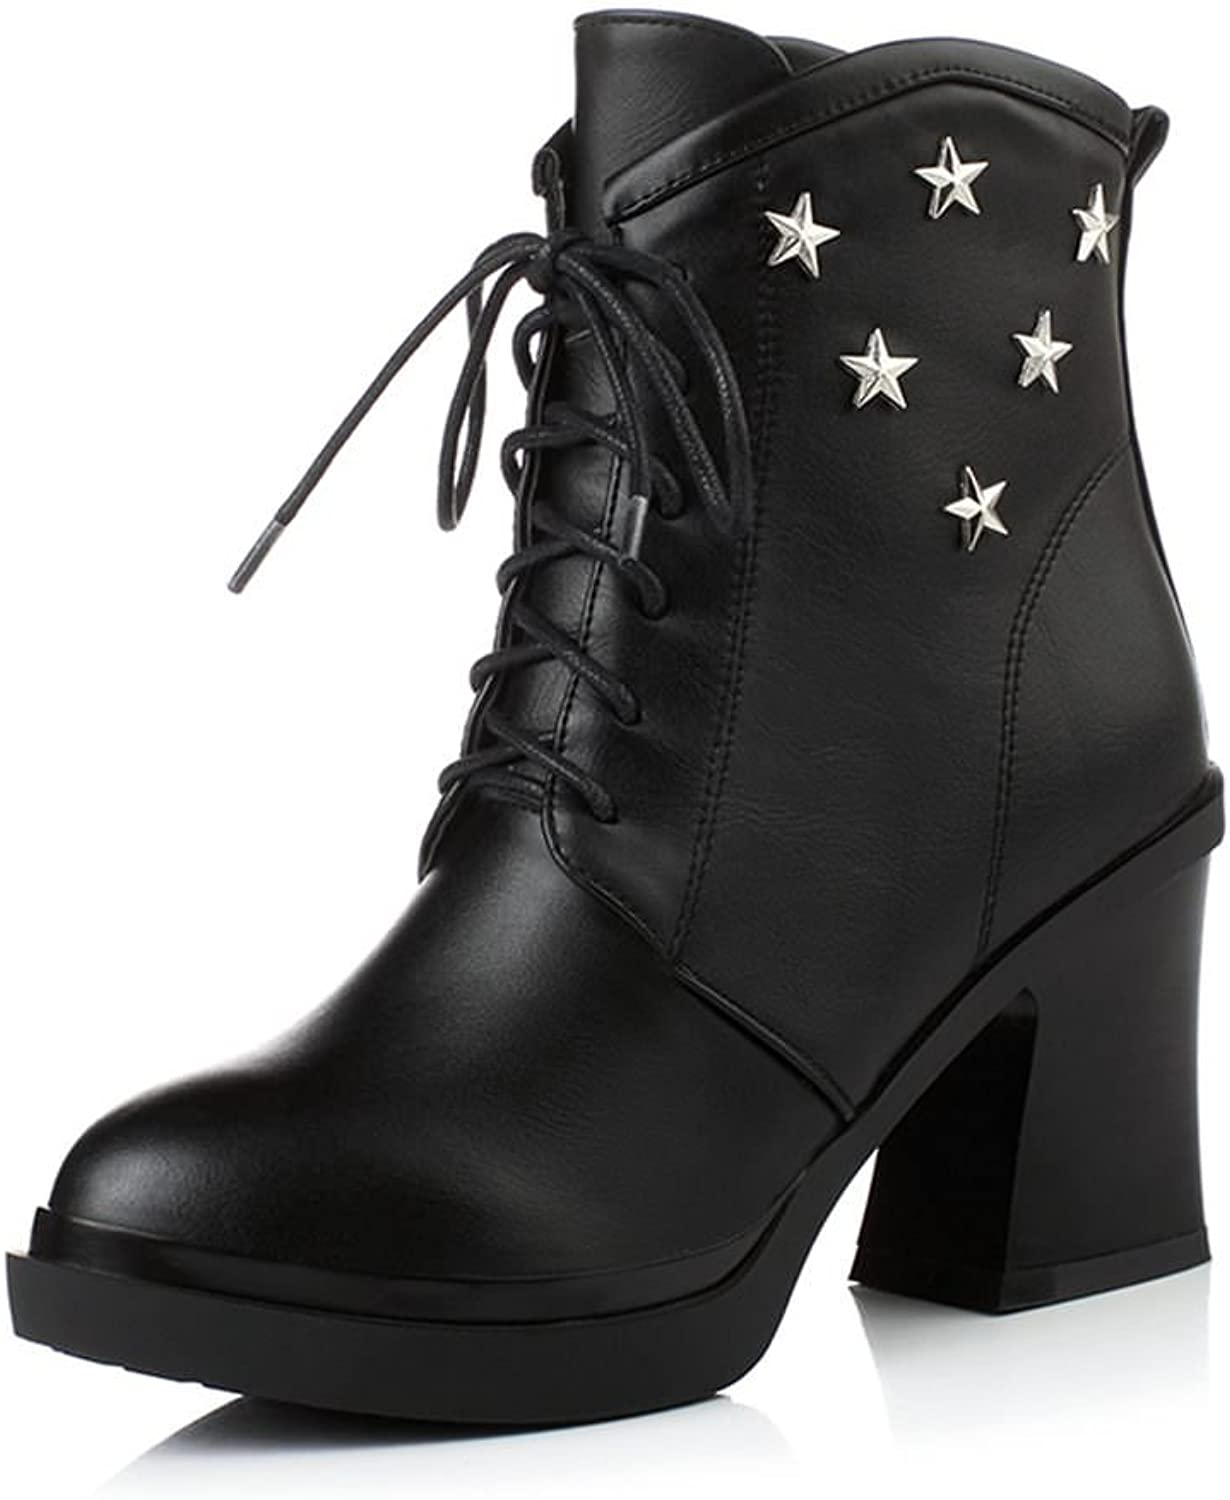 DecoStain Women's Five Star Ornamented Lace Up Ankle Bootie